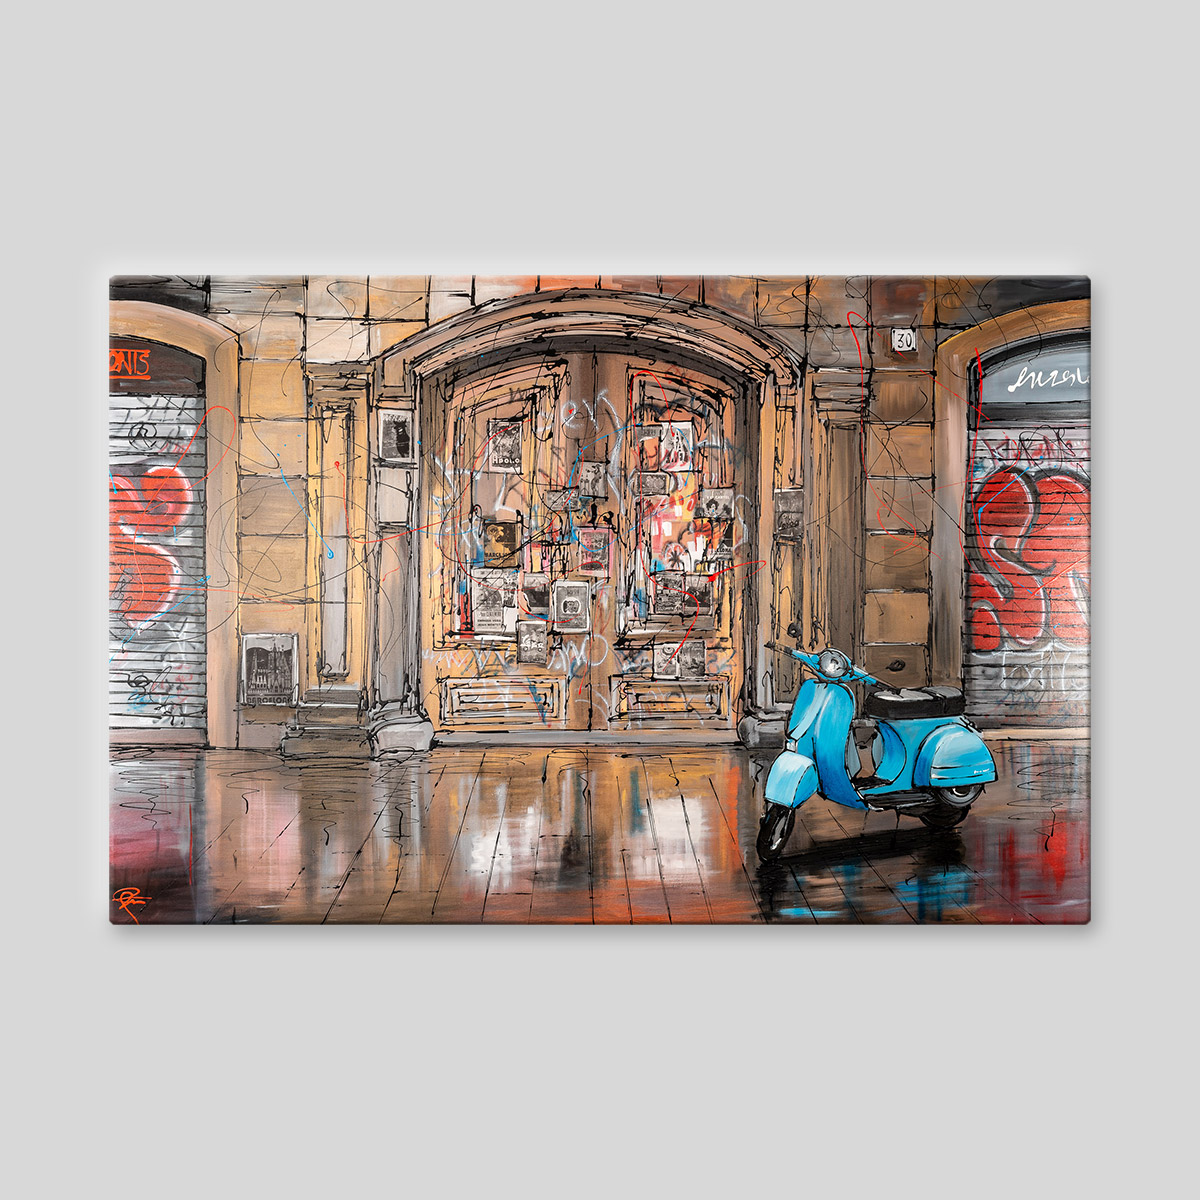 Barcelona Life - Original Barcelona Vespa Painting by UK Contemporary Cityscape Artist Paul Kenton, from the Urban Landscapes Cityscapes collection